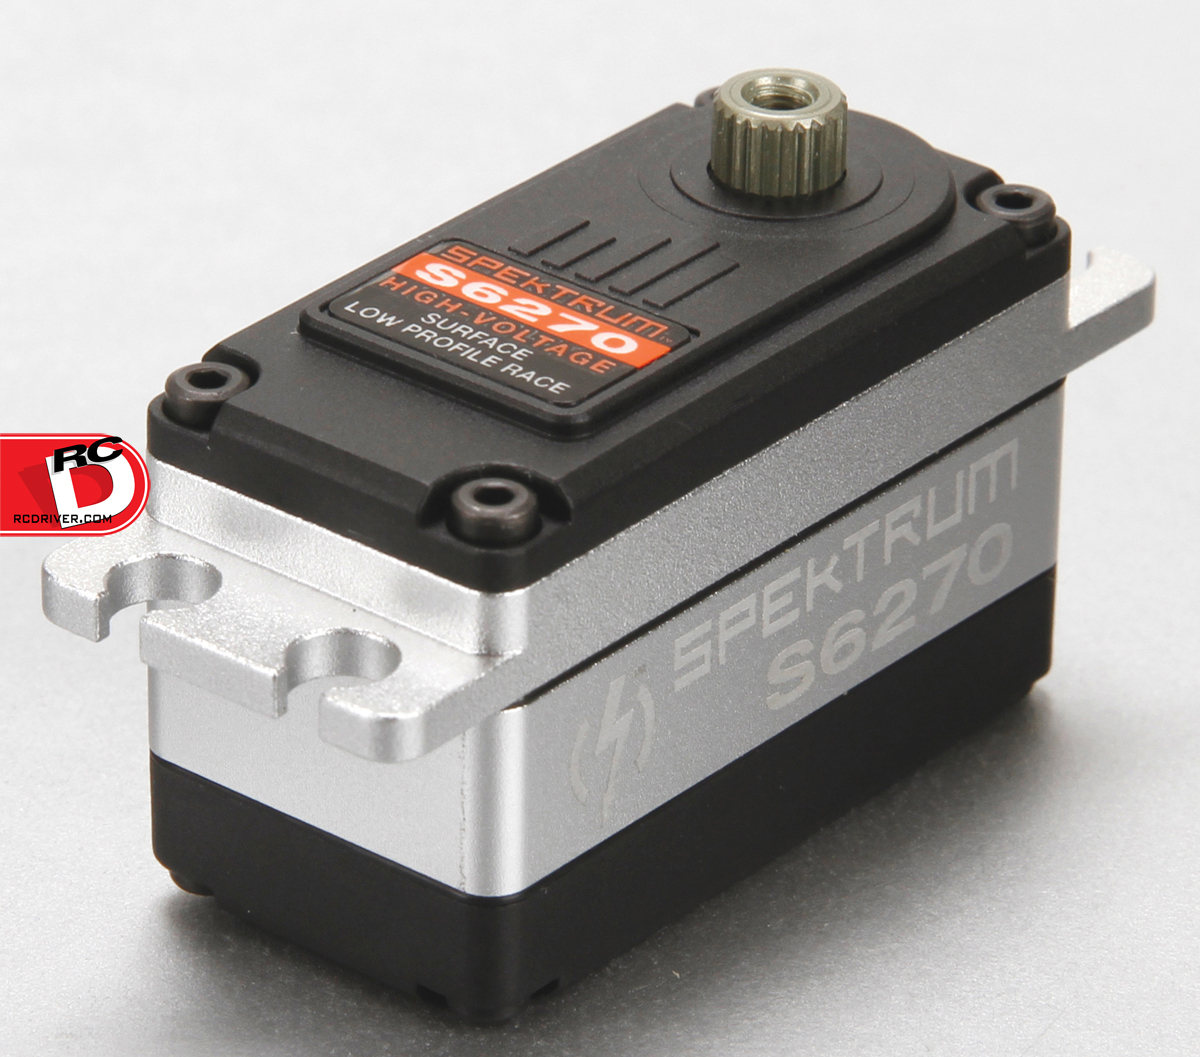 S6270 Low Profile HV Race Surface Servo from Spektrum